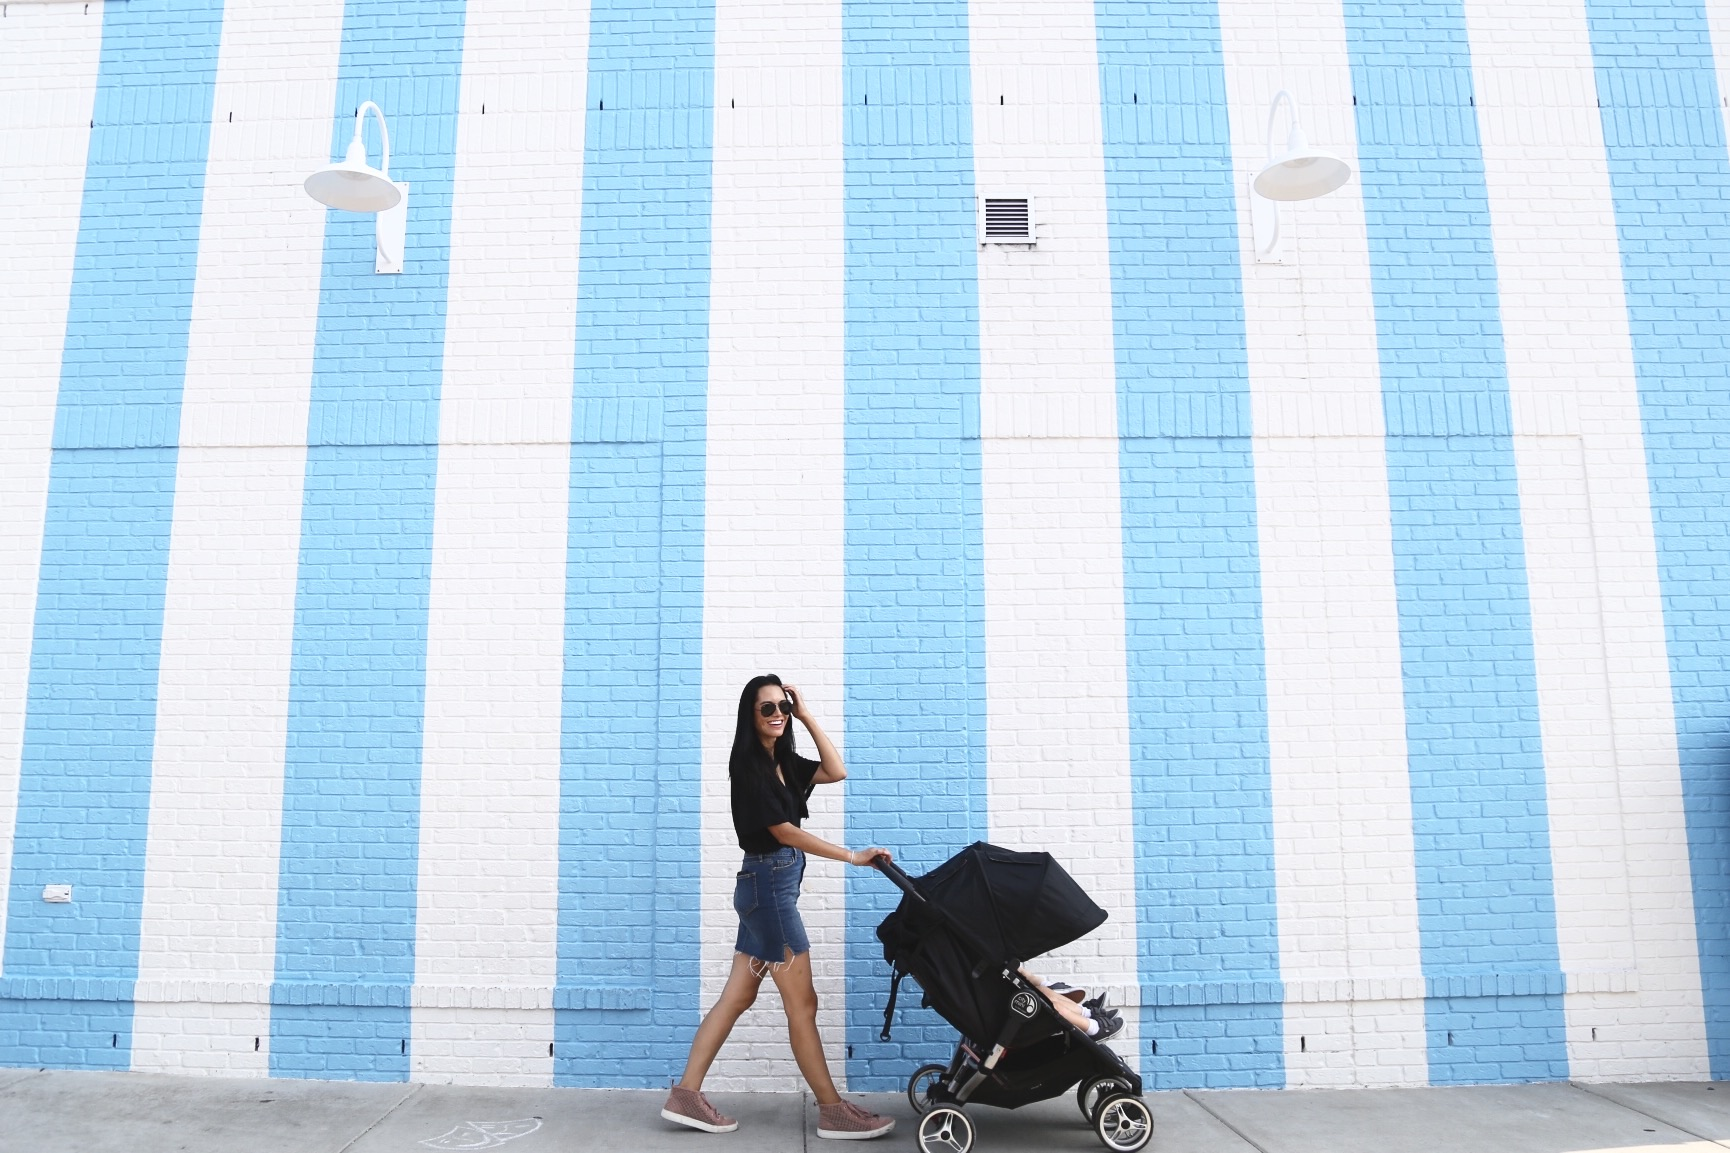 |  denim skirt  |  tee  |  sunnies  |  pink high tops  |  stroller  | image by Sydney Clawson |